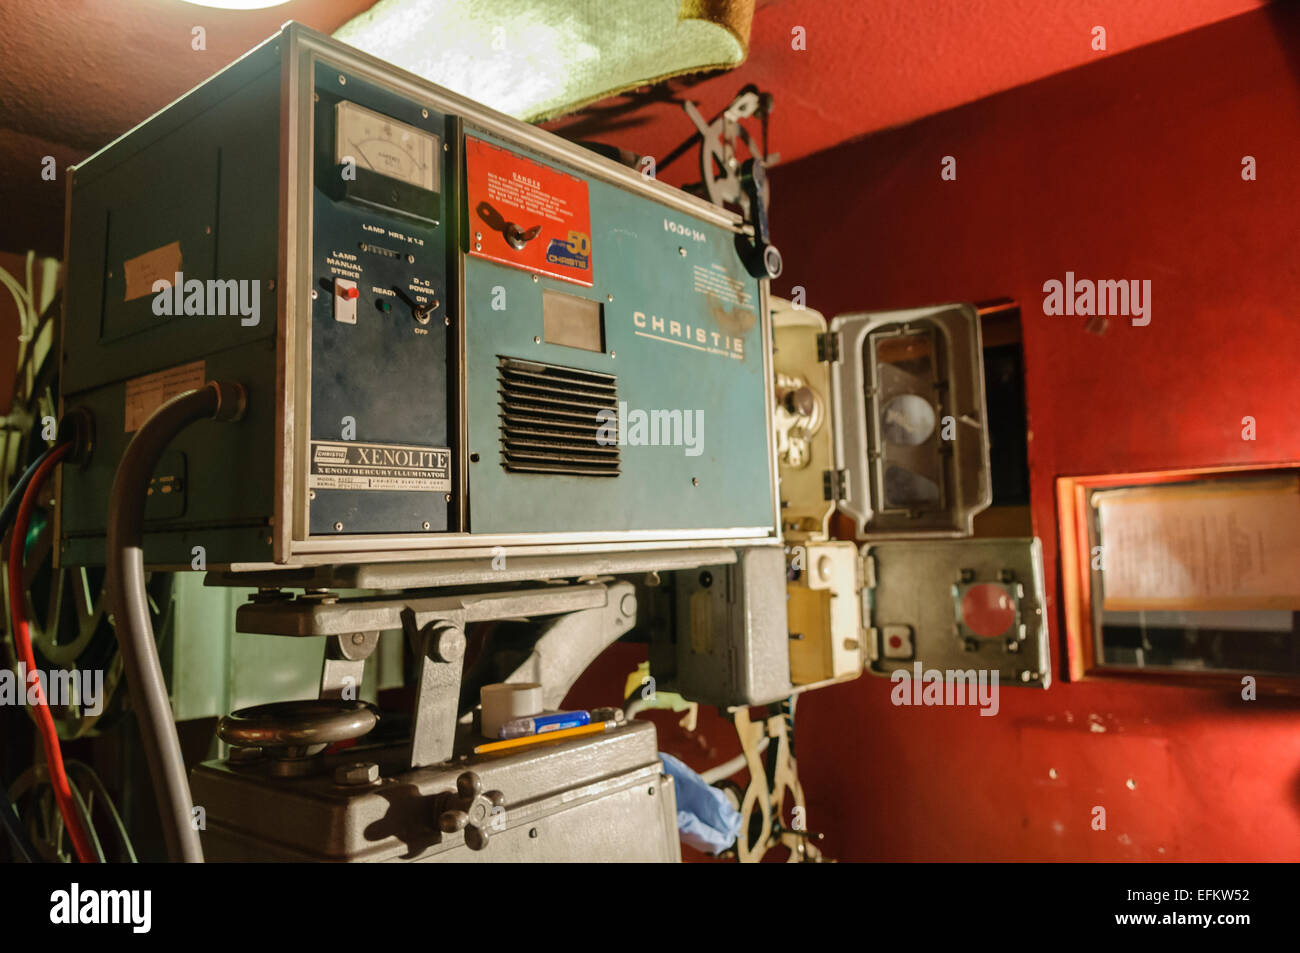 An old Christie Xenolite 45mm film projector dating from the 1950s. - Stock Image